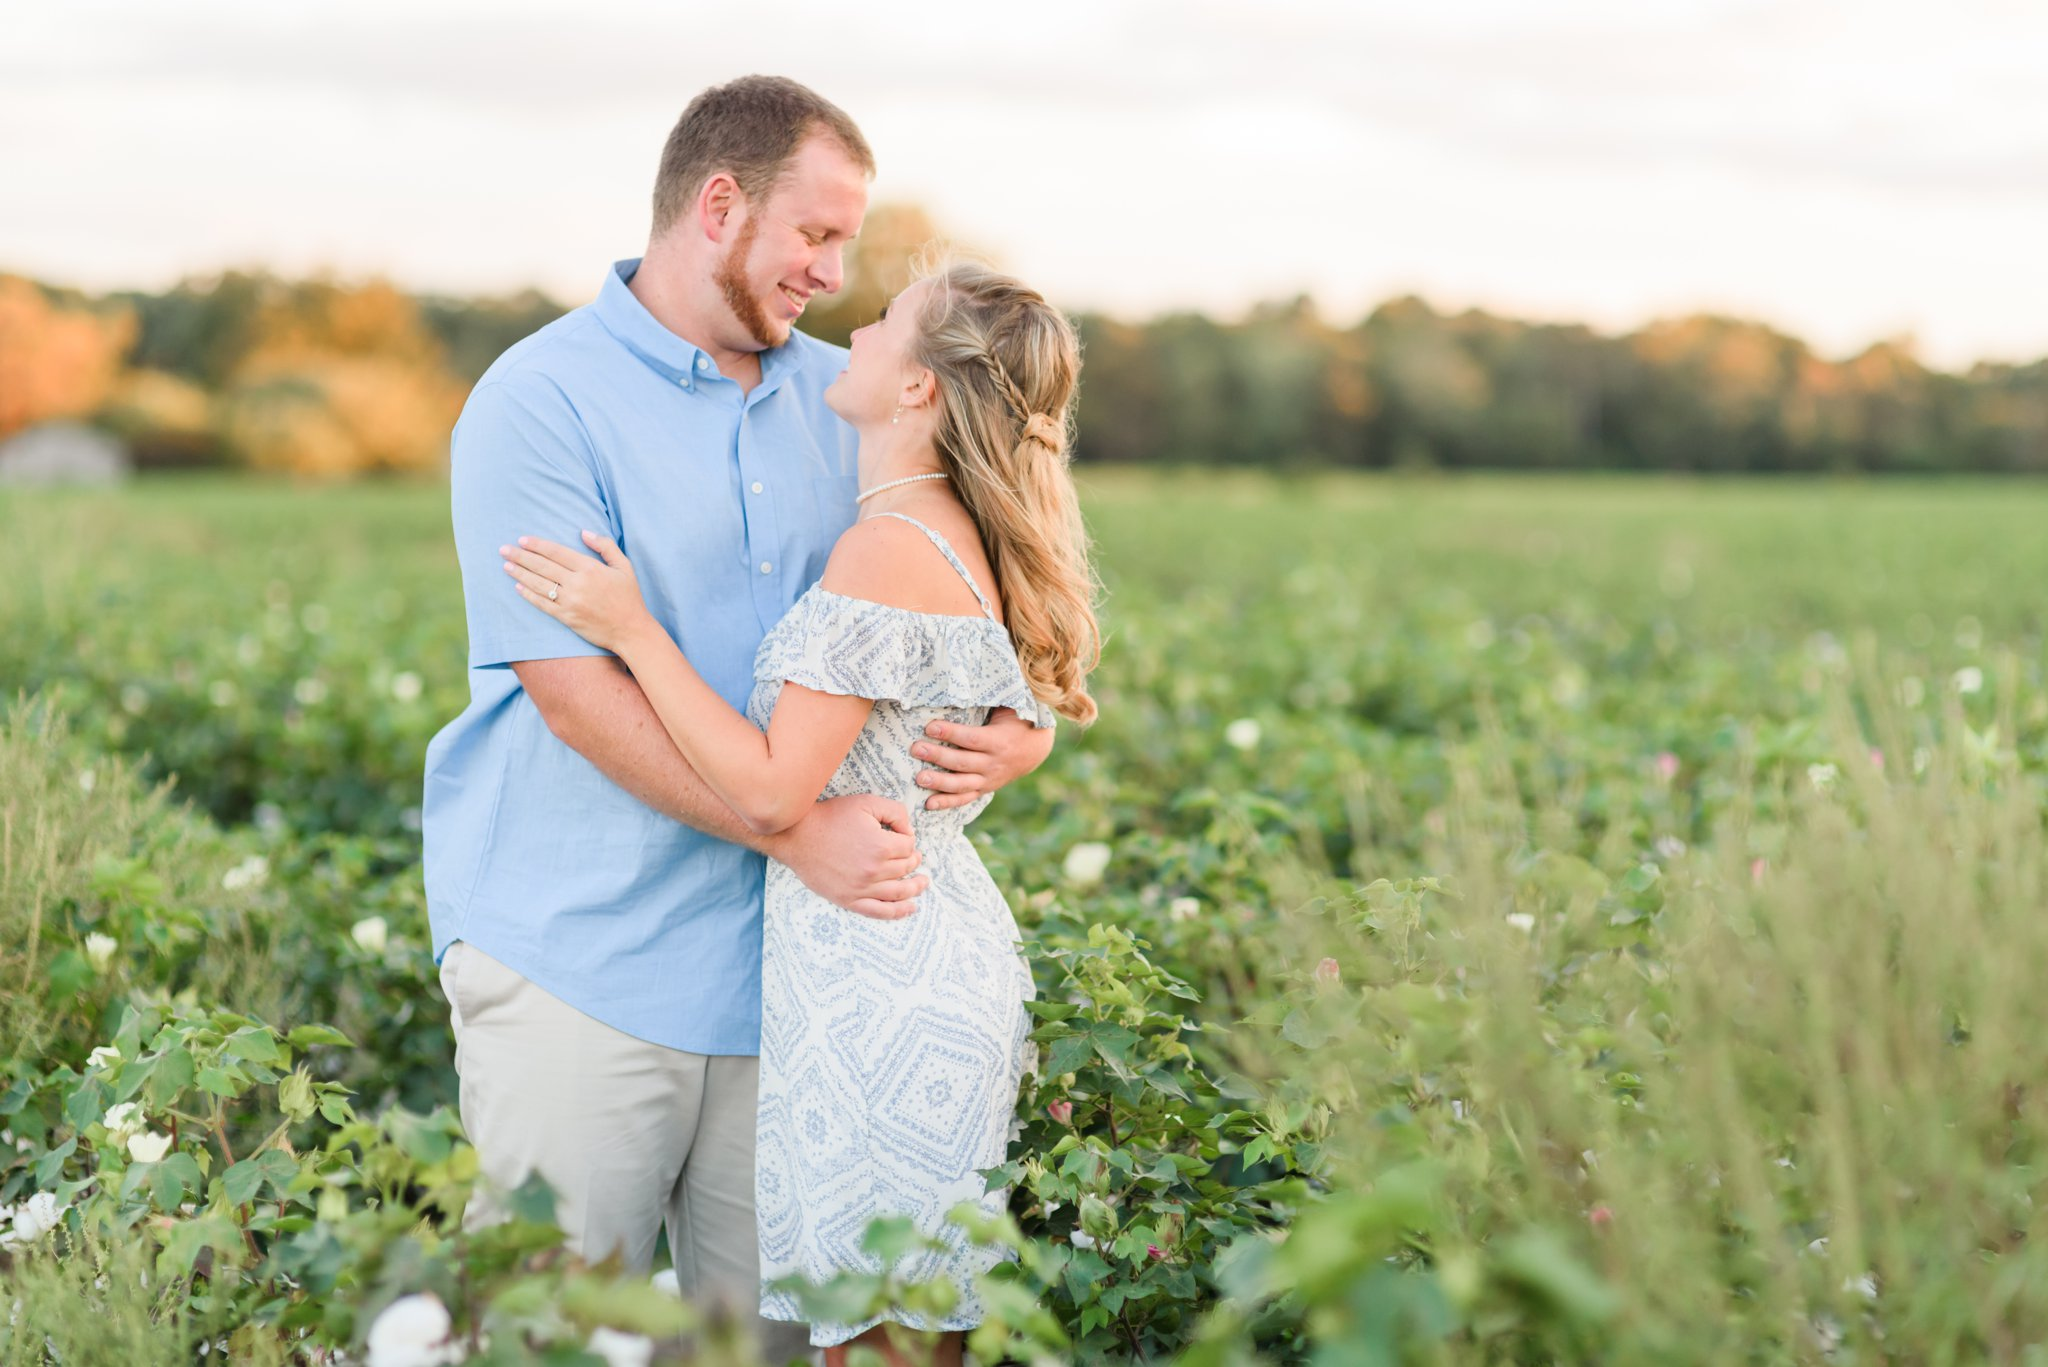 We ended the session in a nearby Cotton Field with the most AMAZING light!!!